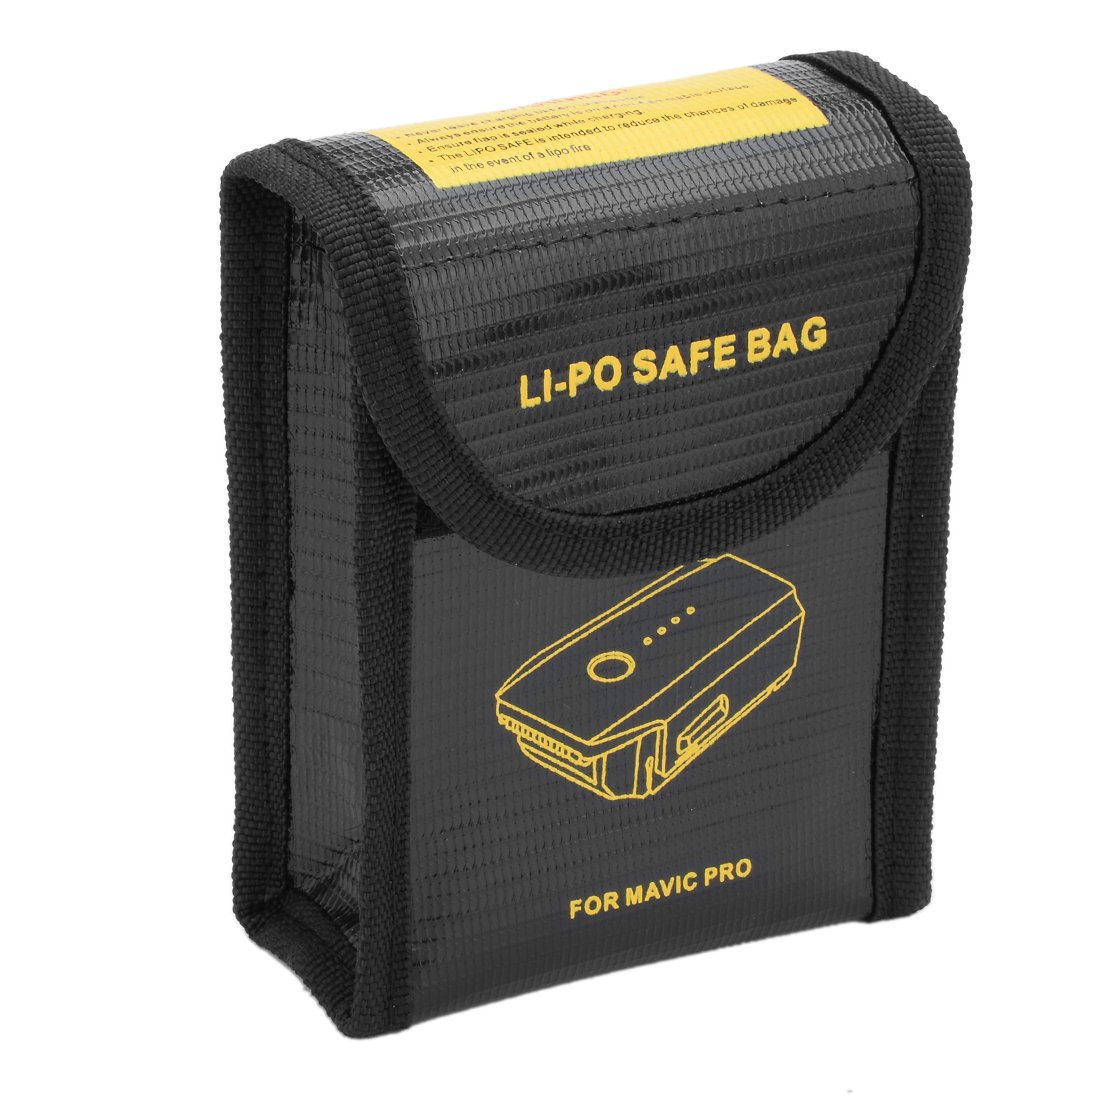 uxcell Fireproof RC Lipo Battery Storage Charging Safe Bag Pouch Sack Lipo Battery Guard Black 95mmx46mmx115mm Small